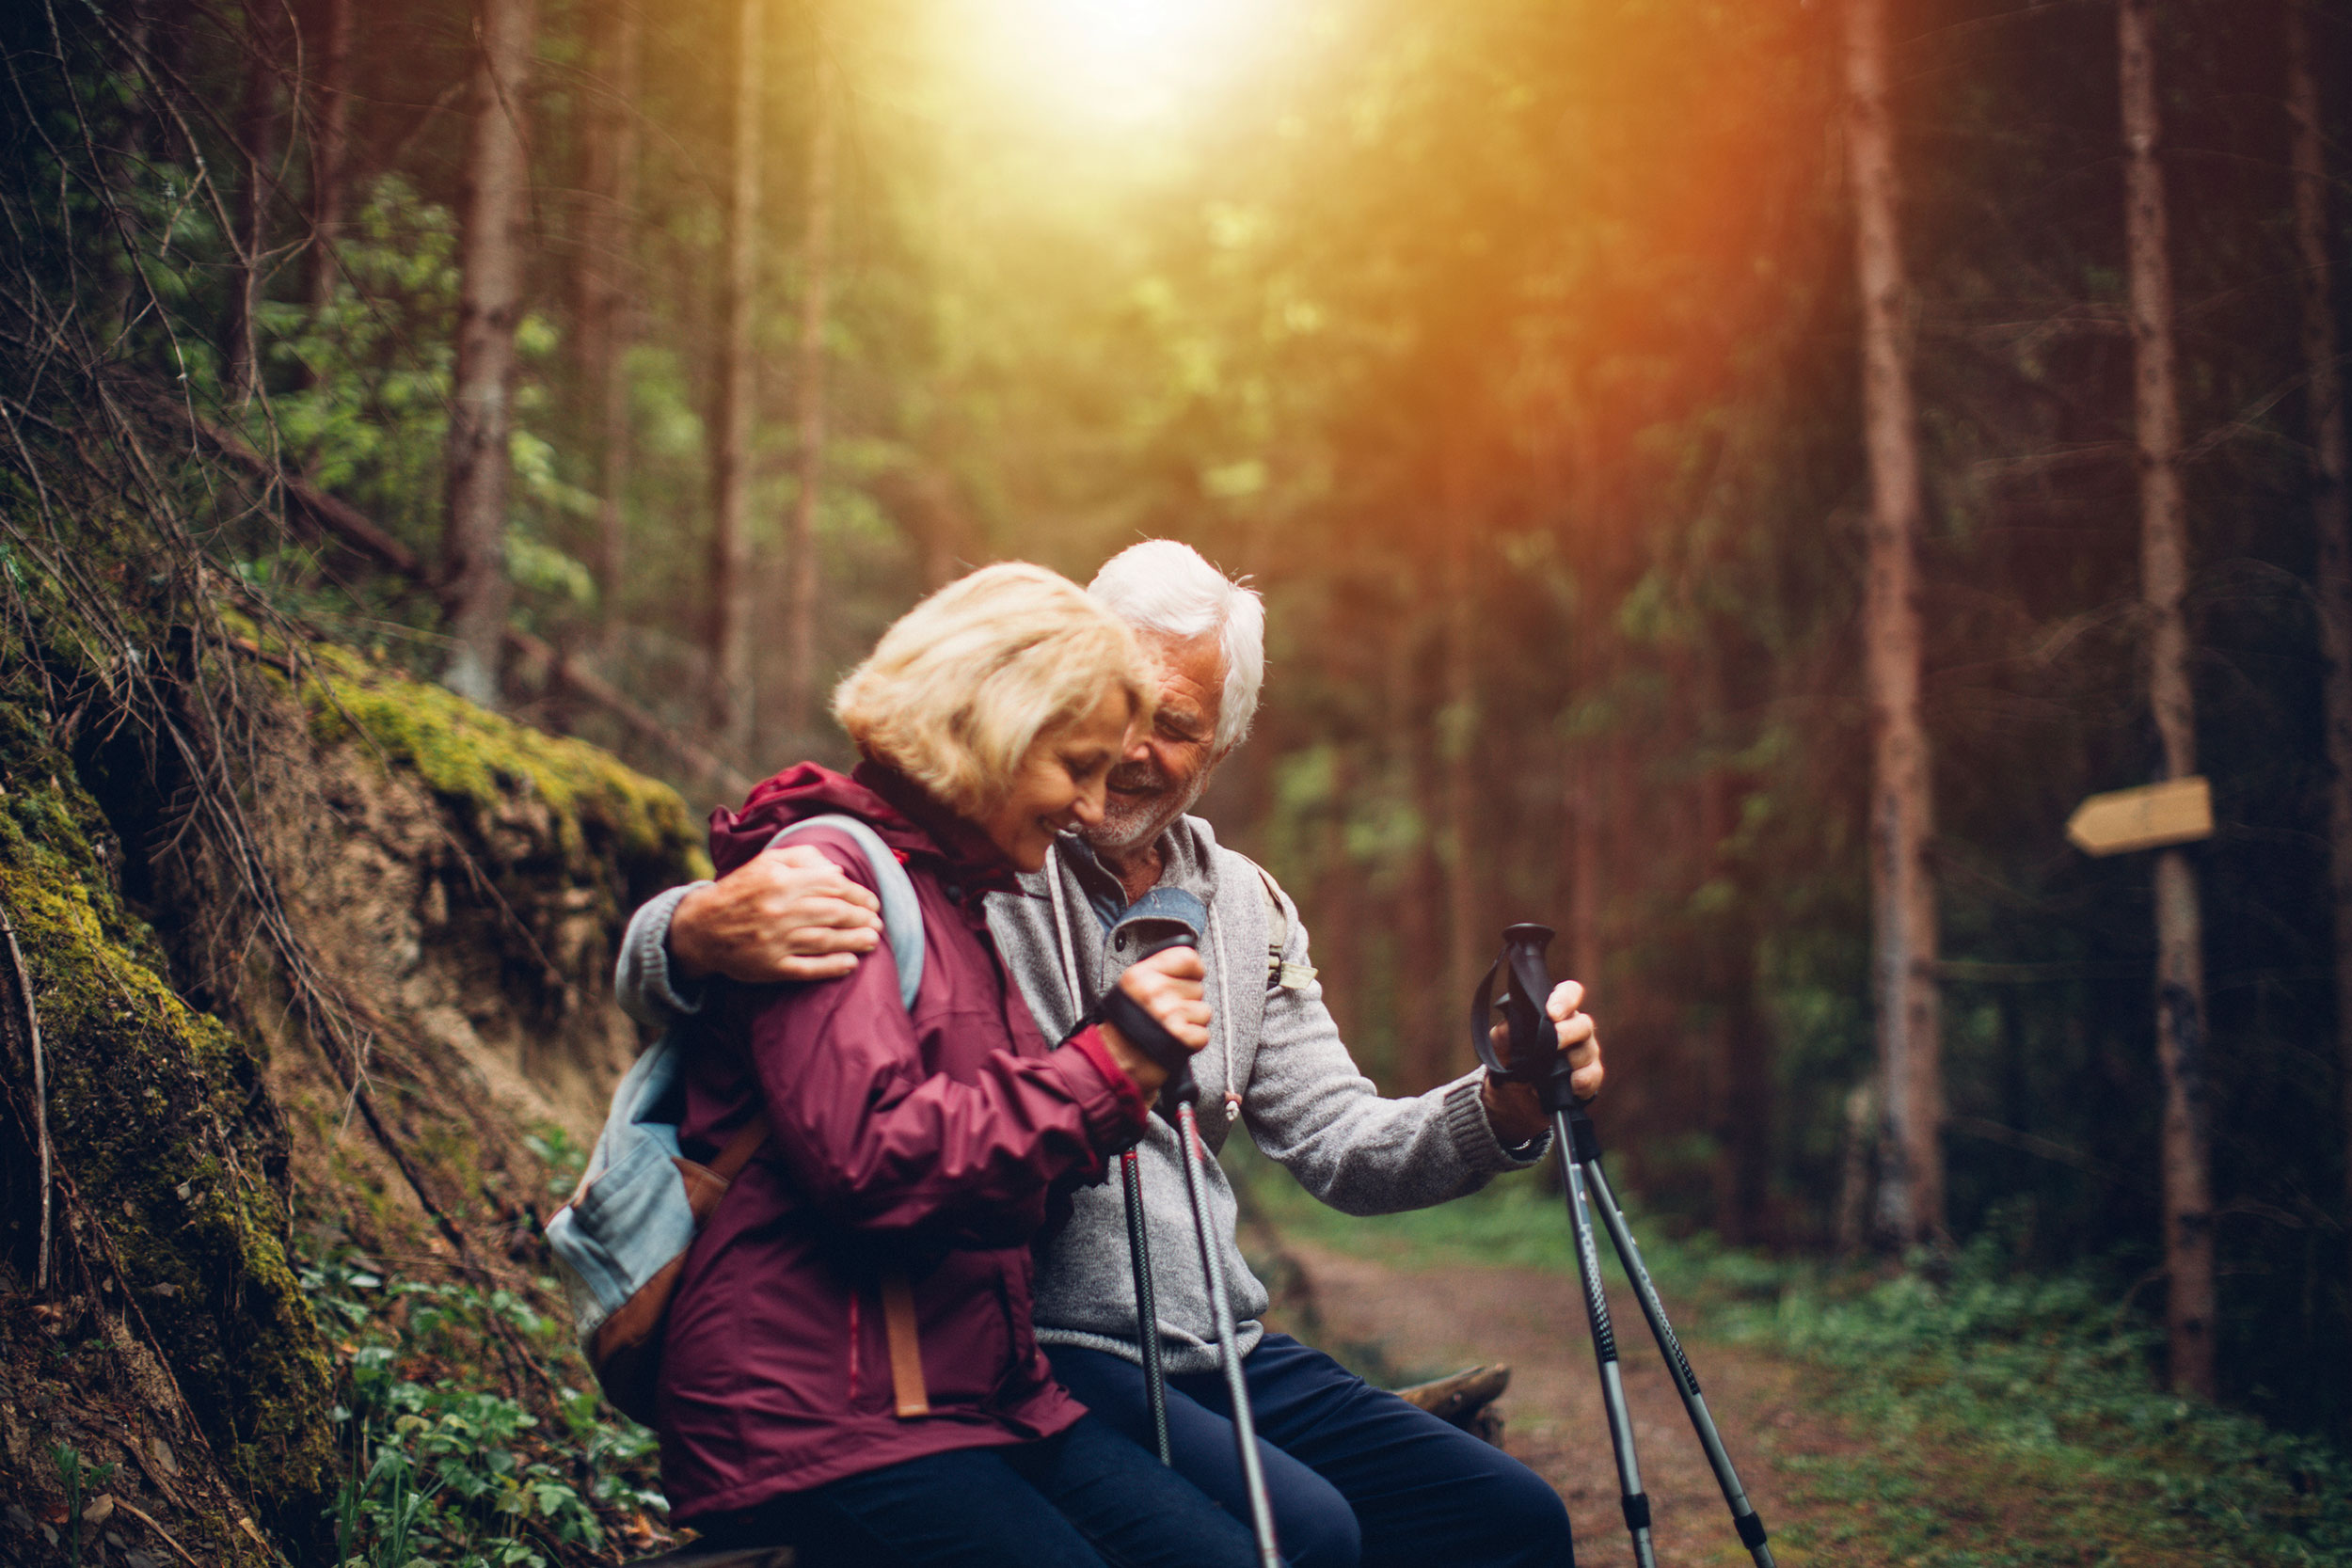 Daily habits that are better for your marriage